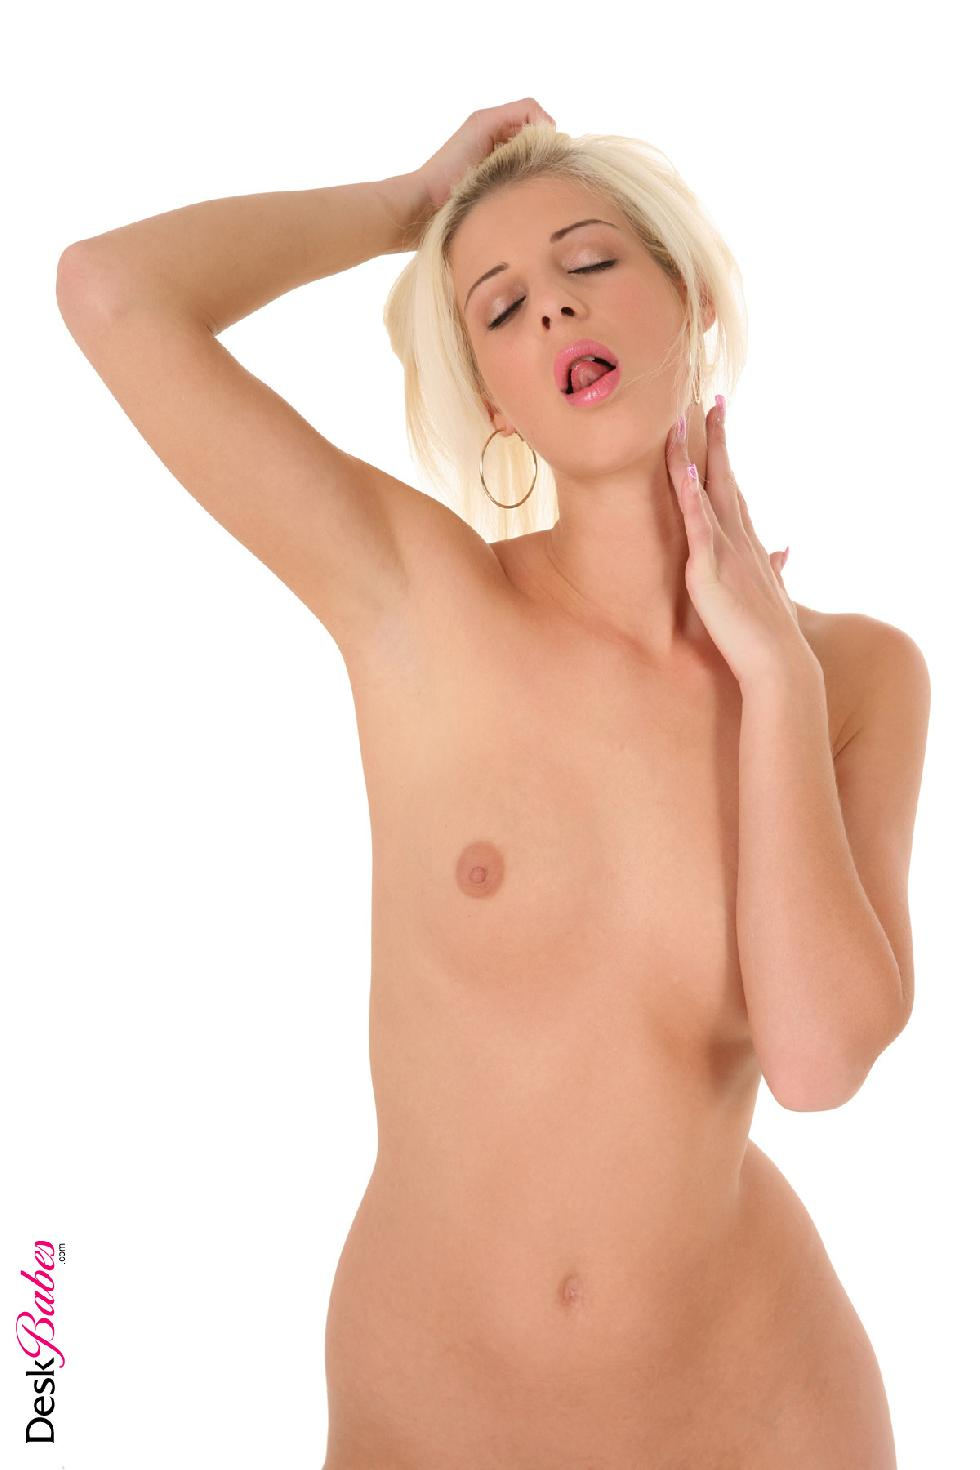 Long-haired blonde and big dildo - Mia Hilton - 5